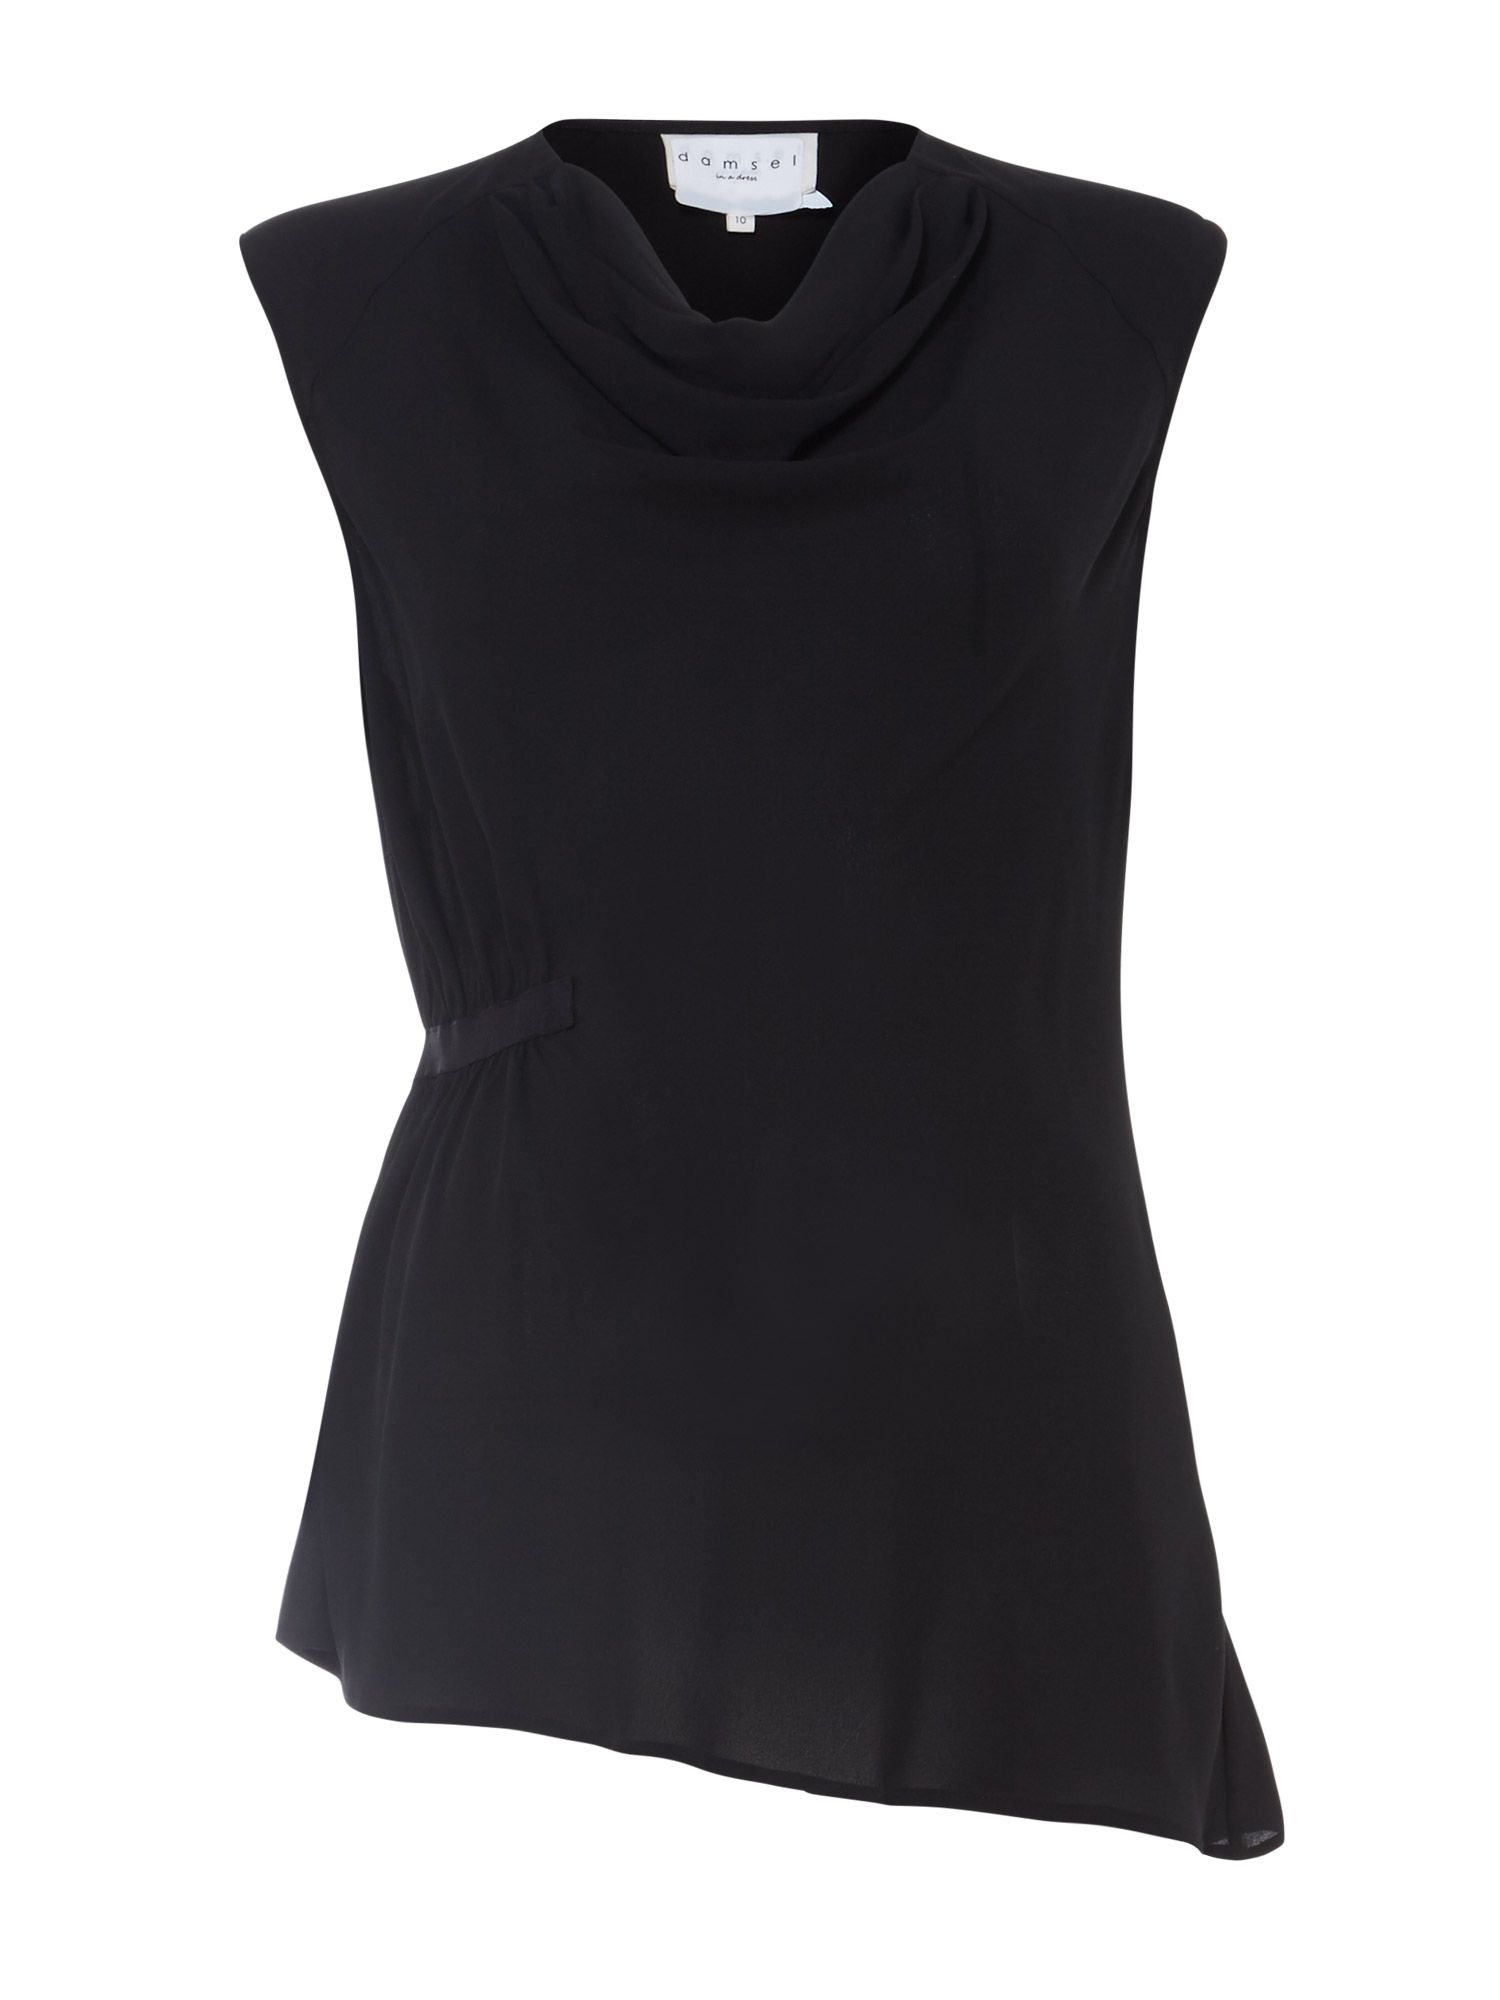 Damsel in a Dress Peregrine Top, Black